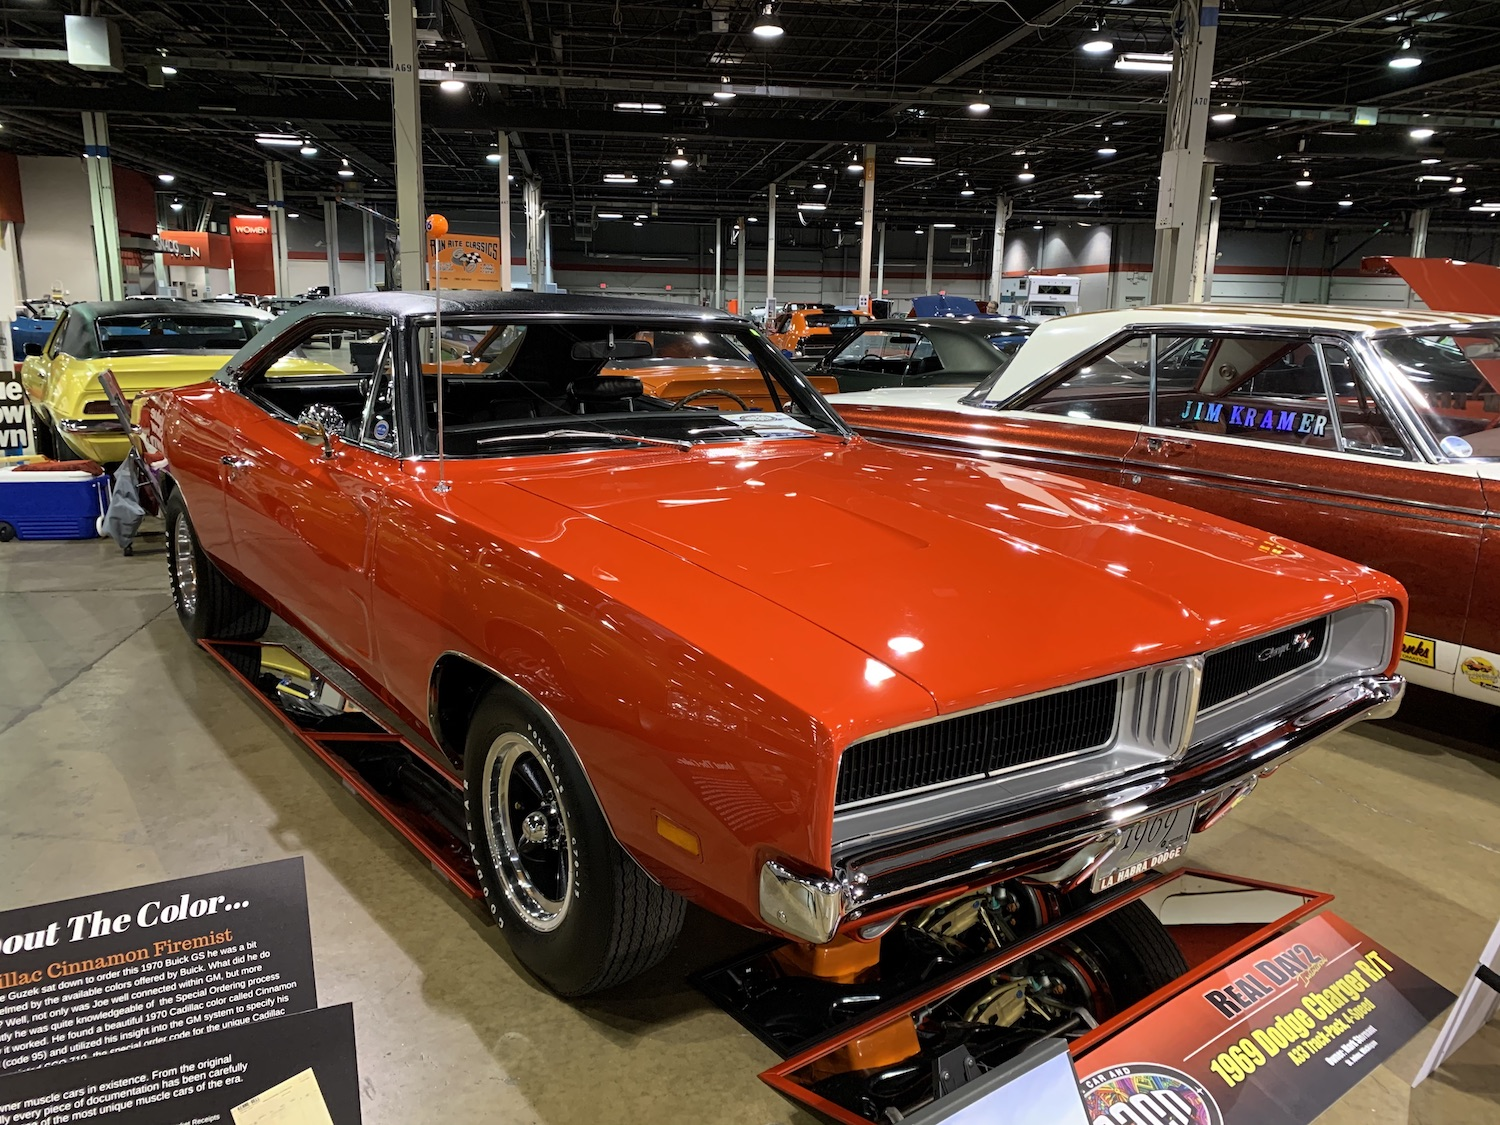 1969 Dodge Charger RT front three-quarter